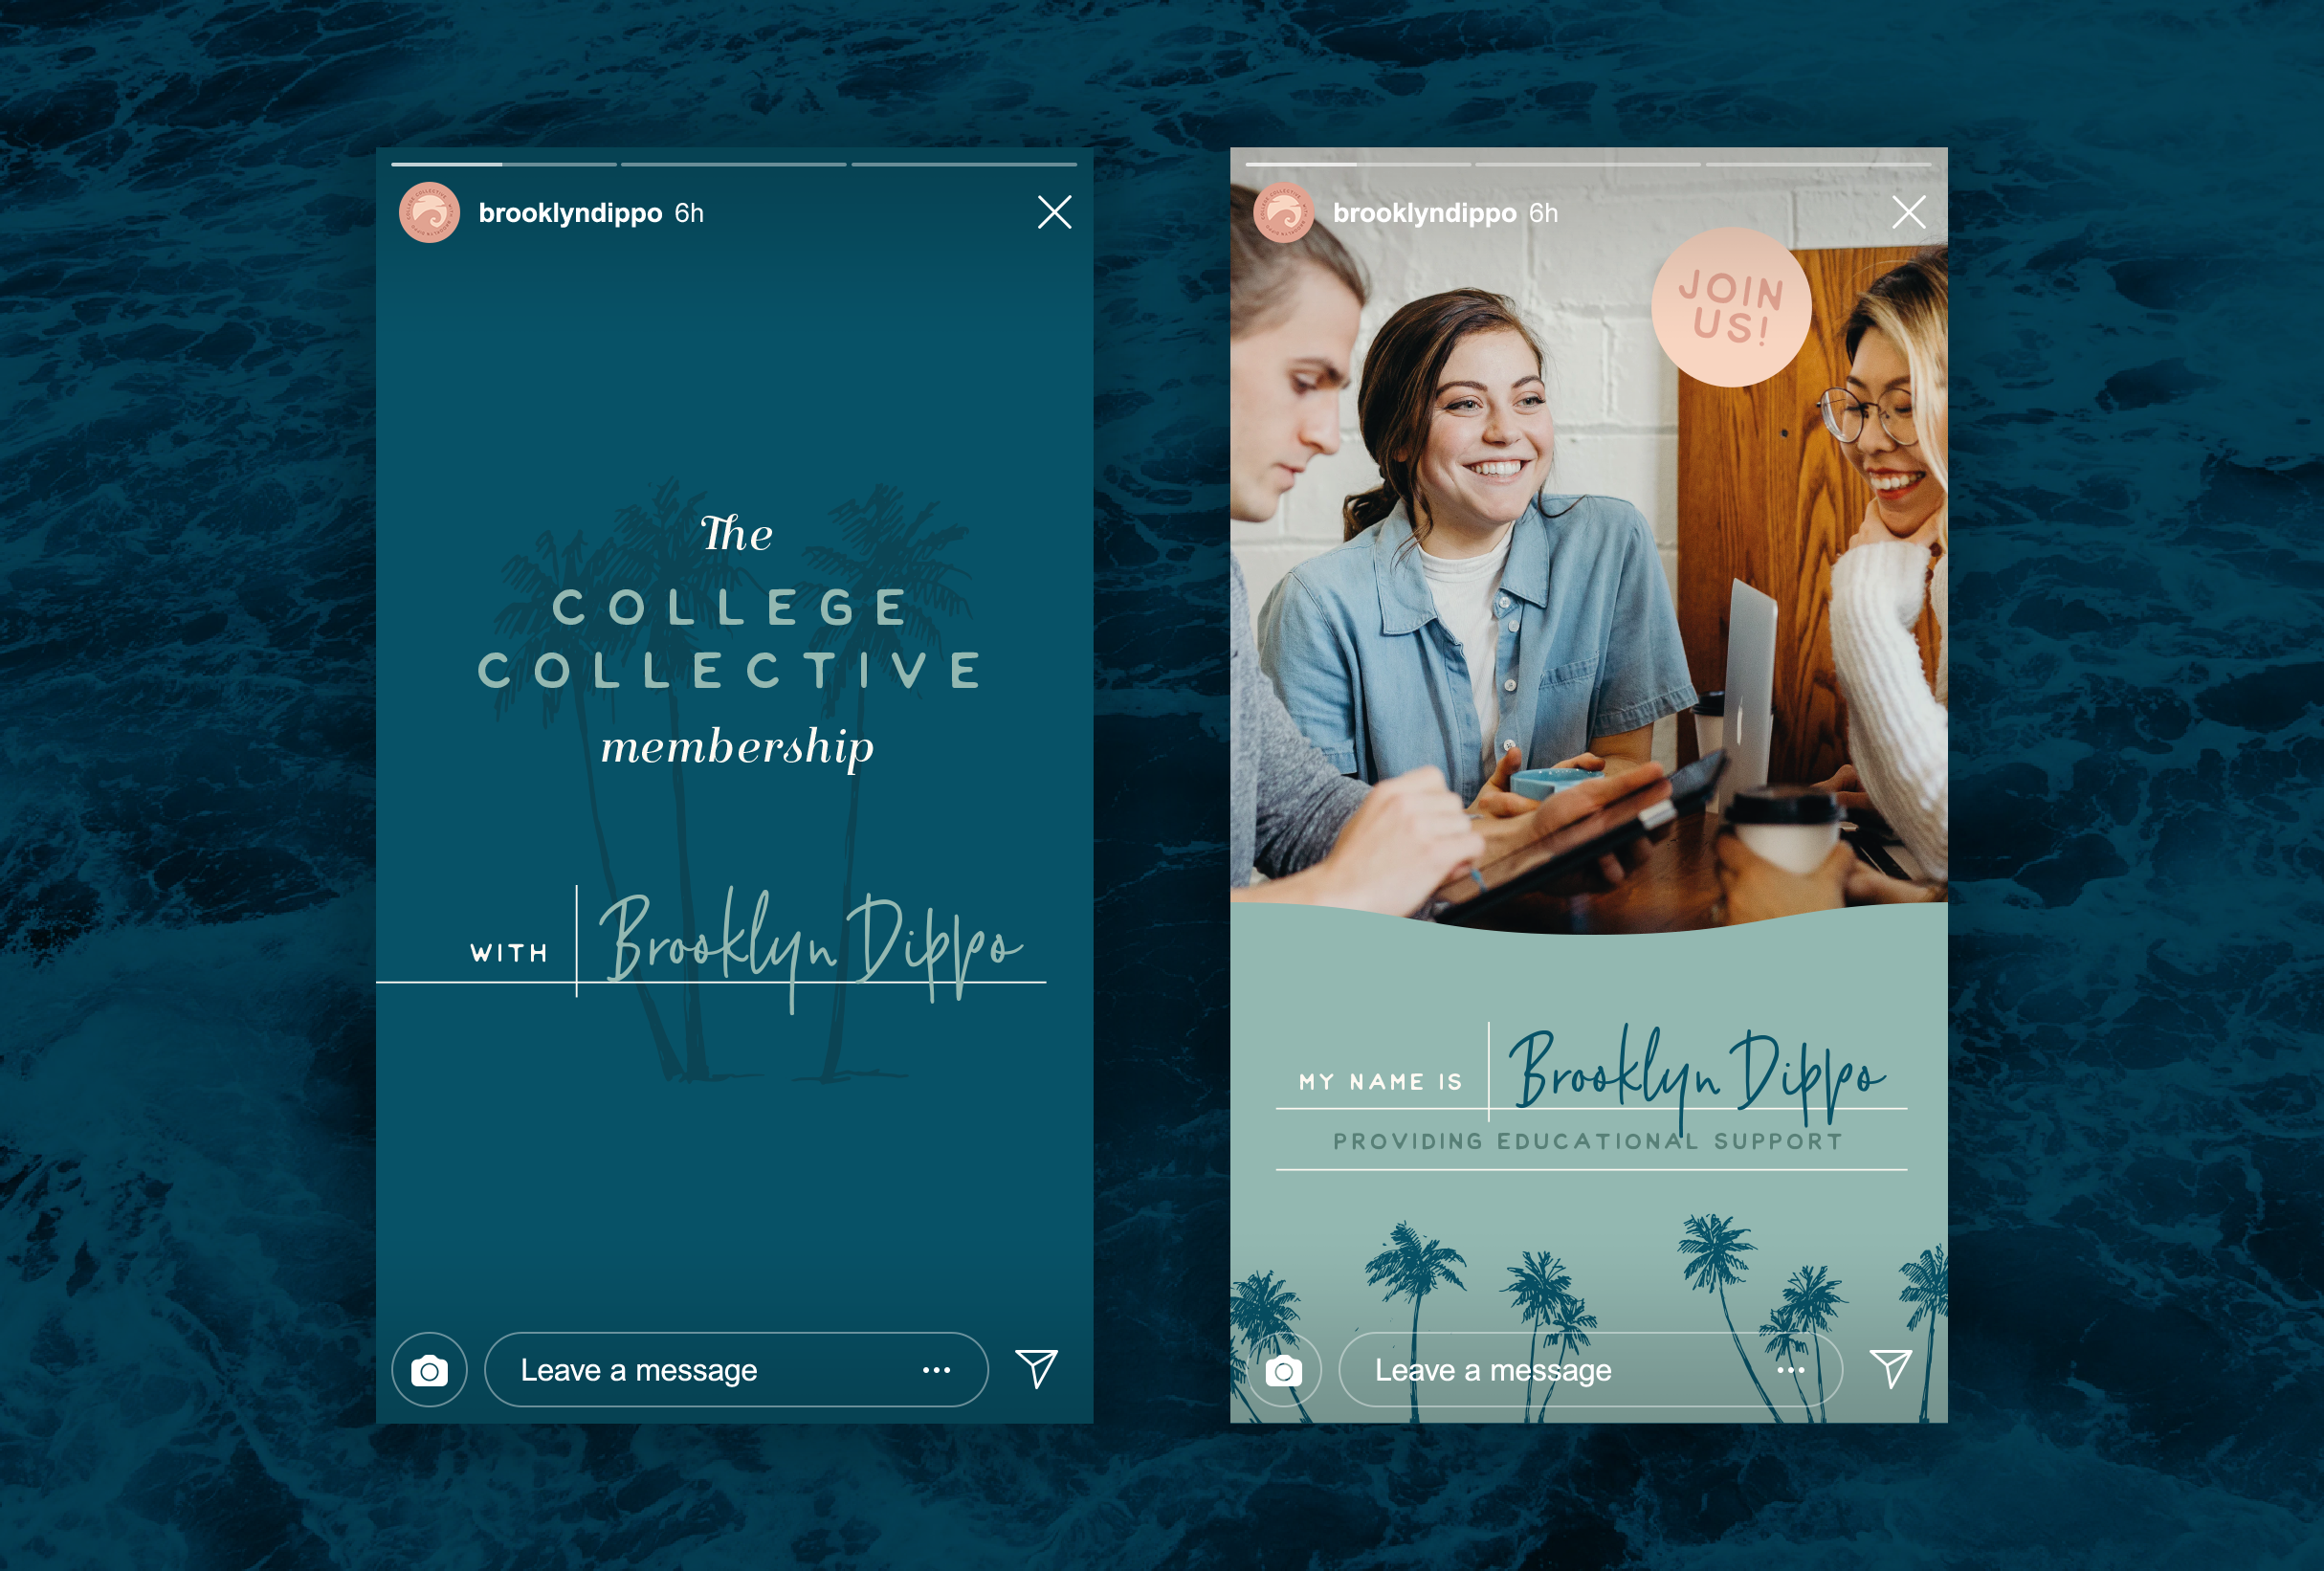 Instagram stories for College Collective, The College Collective membership gives students a step-by-step plan for applying to college with the support of a community full of other educational professionals and peers - designed by Wiltshire-based graphic designer, Kaye Huett